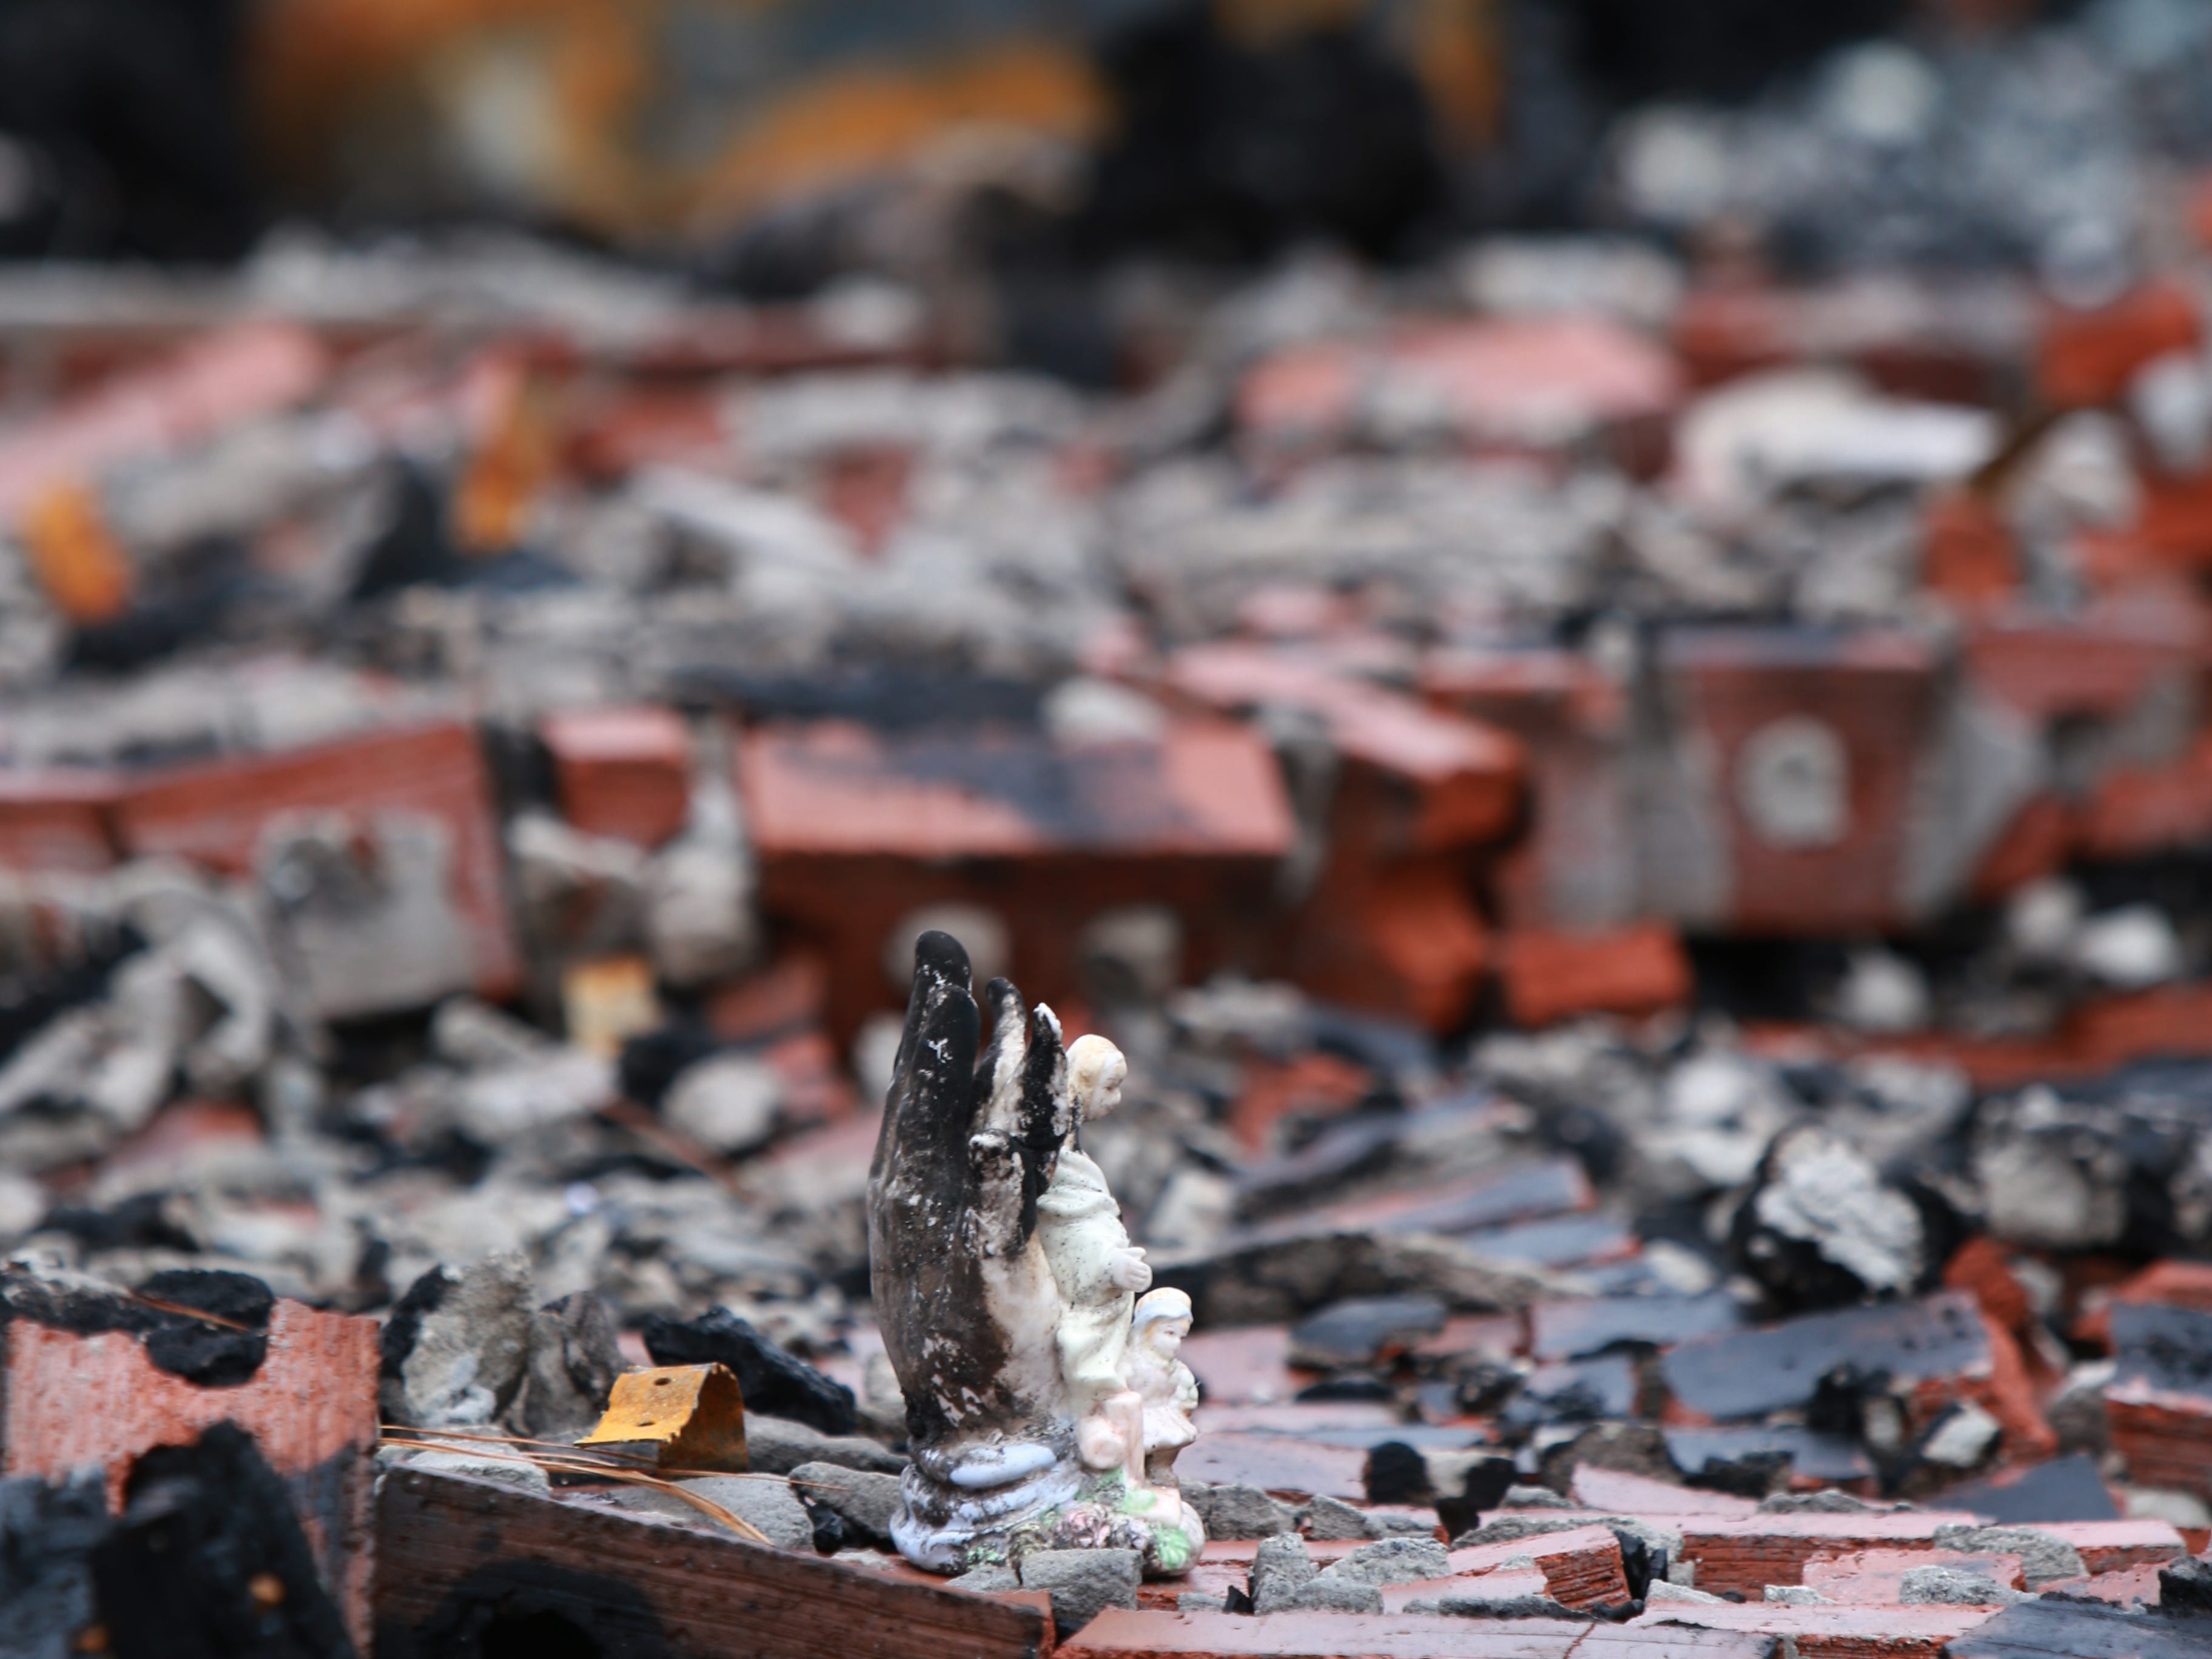 An angel figurine was one of the possessions left in the rubble of a house fire that destroyed the Haas home in Kiln, Mississippi, on Nov. 26, 2018.